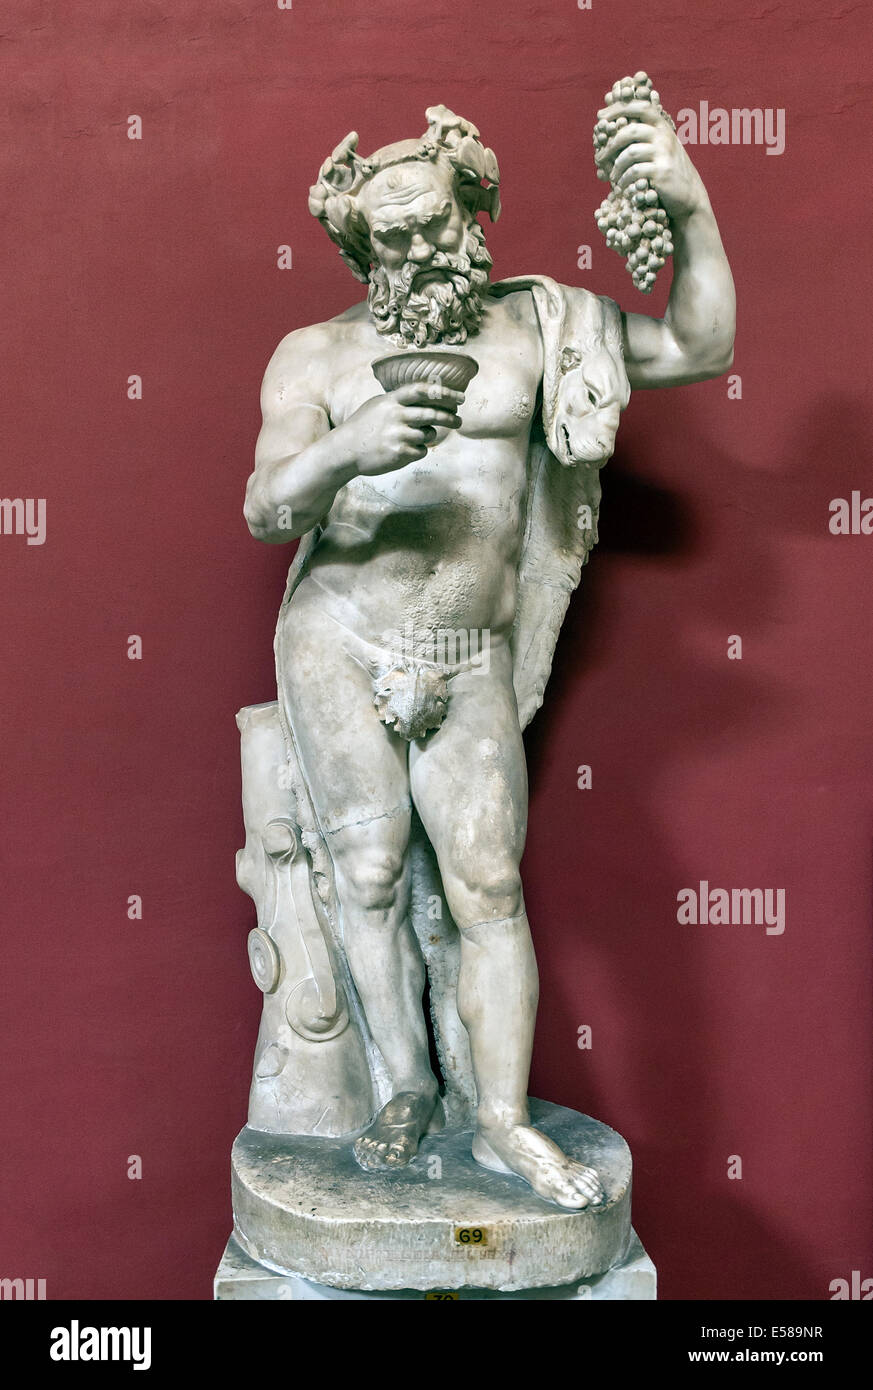 Marble statue of a drunken Silenus, Pio-Clementine Museum, Room of Muses, Vatican Museums, Rome, Italy - Stock Image